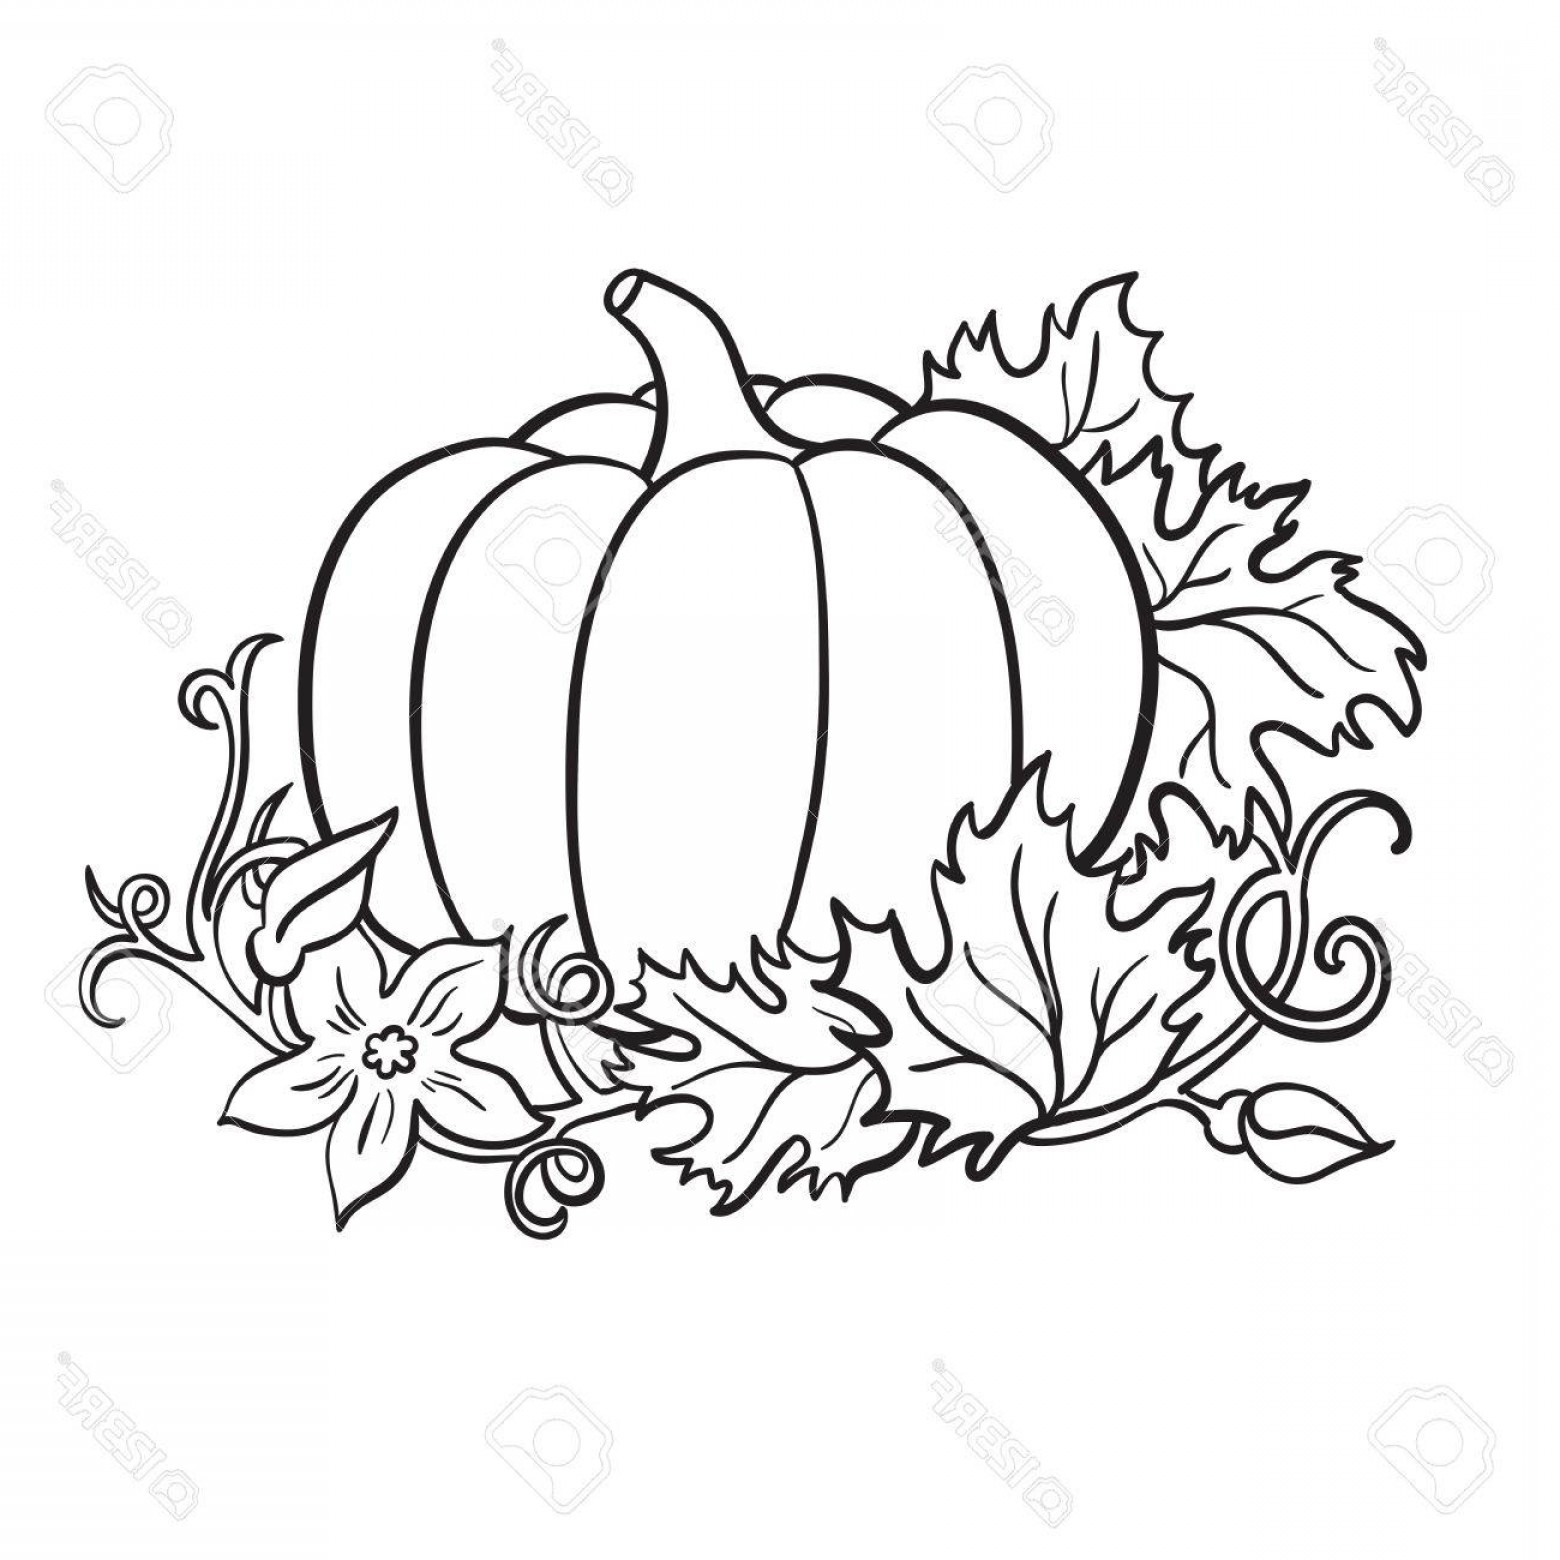 Pumpkin Outline Vector Art: Photostock Vector Pumpkin Vector Drawing Isolated Outline Vegetable With Leaves And Flower On Branch Hand Drawn Harves